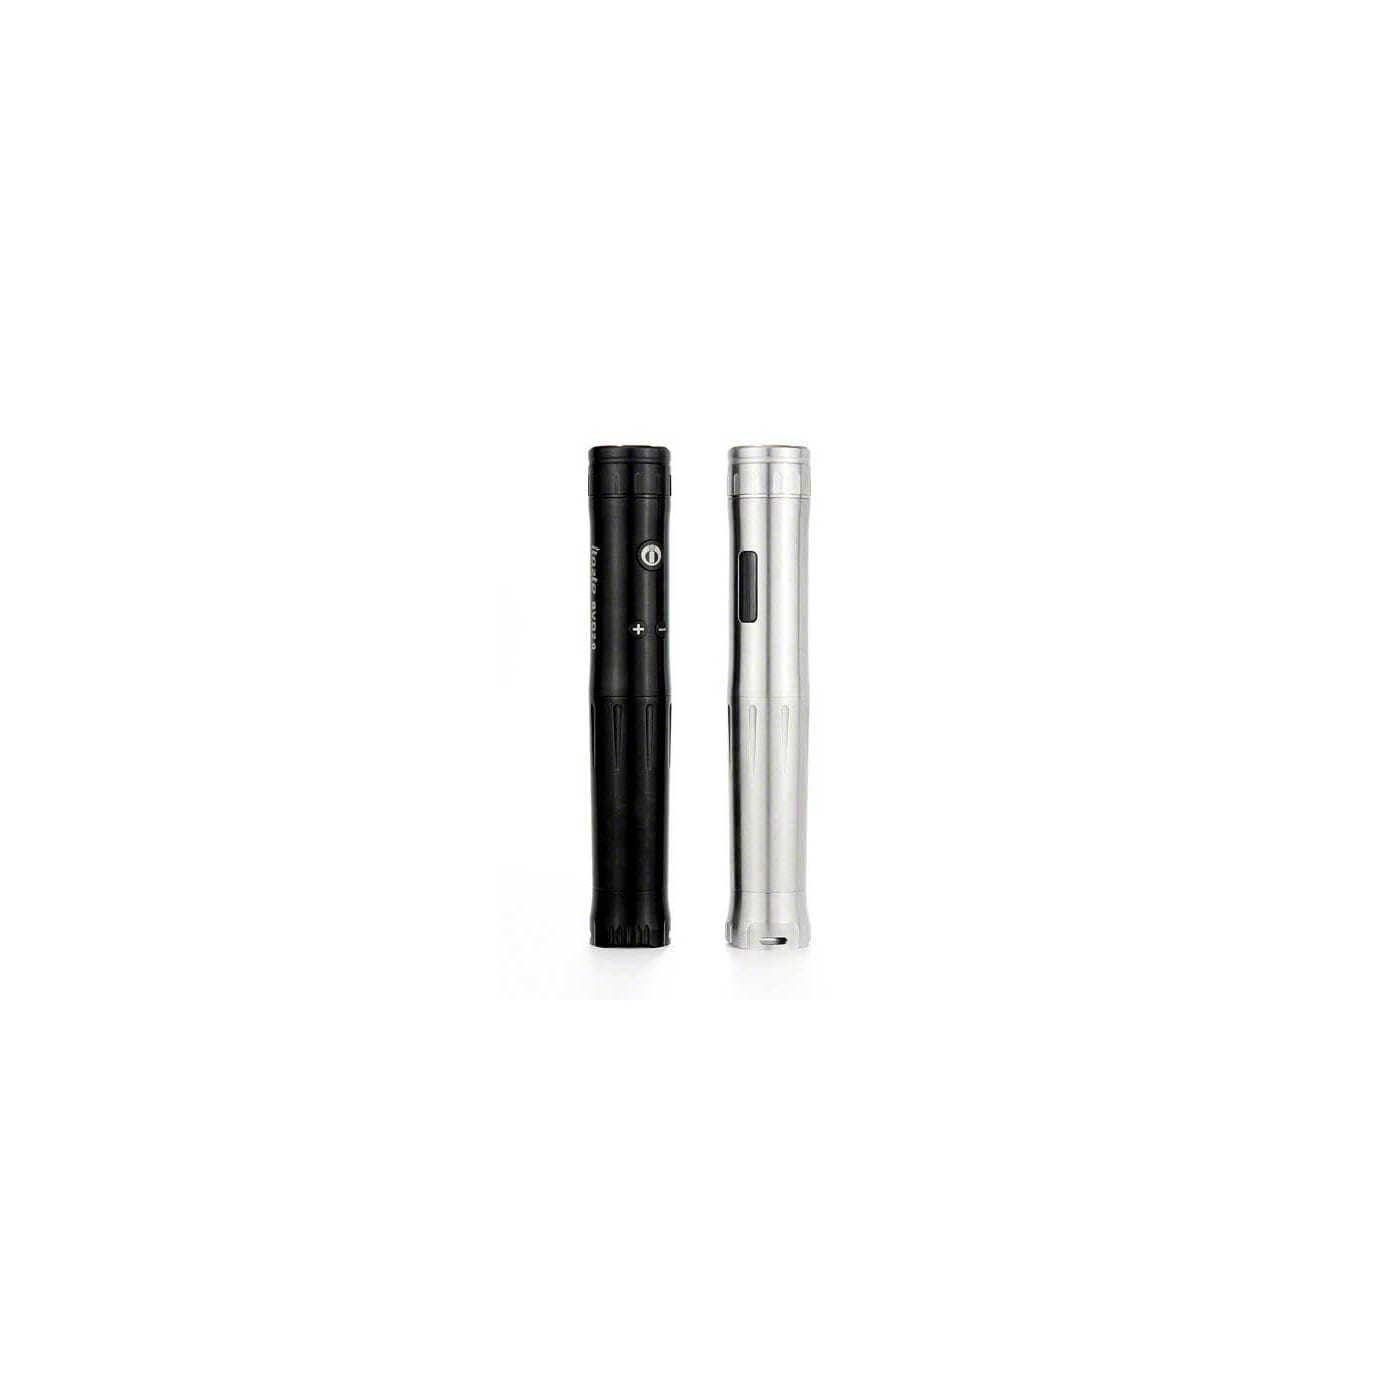 Innokin iTaste SVD 2.0 - Black and SS